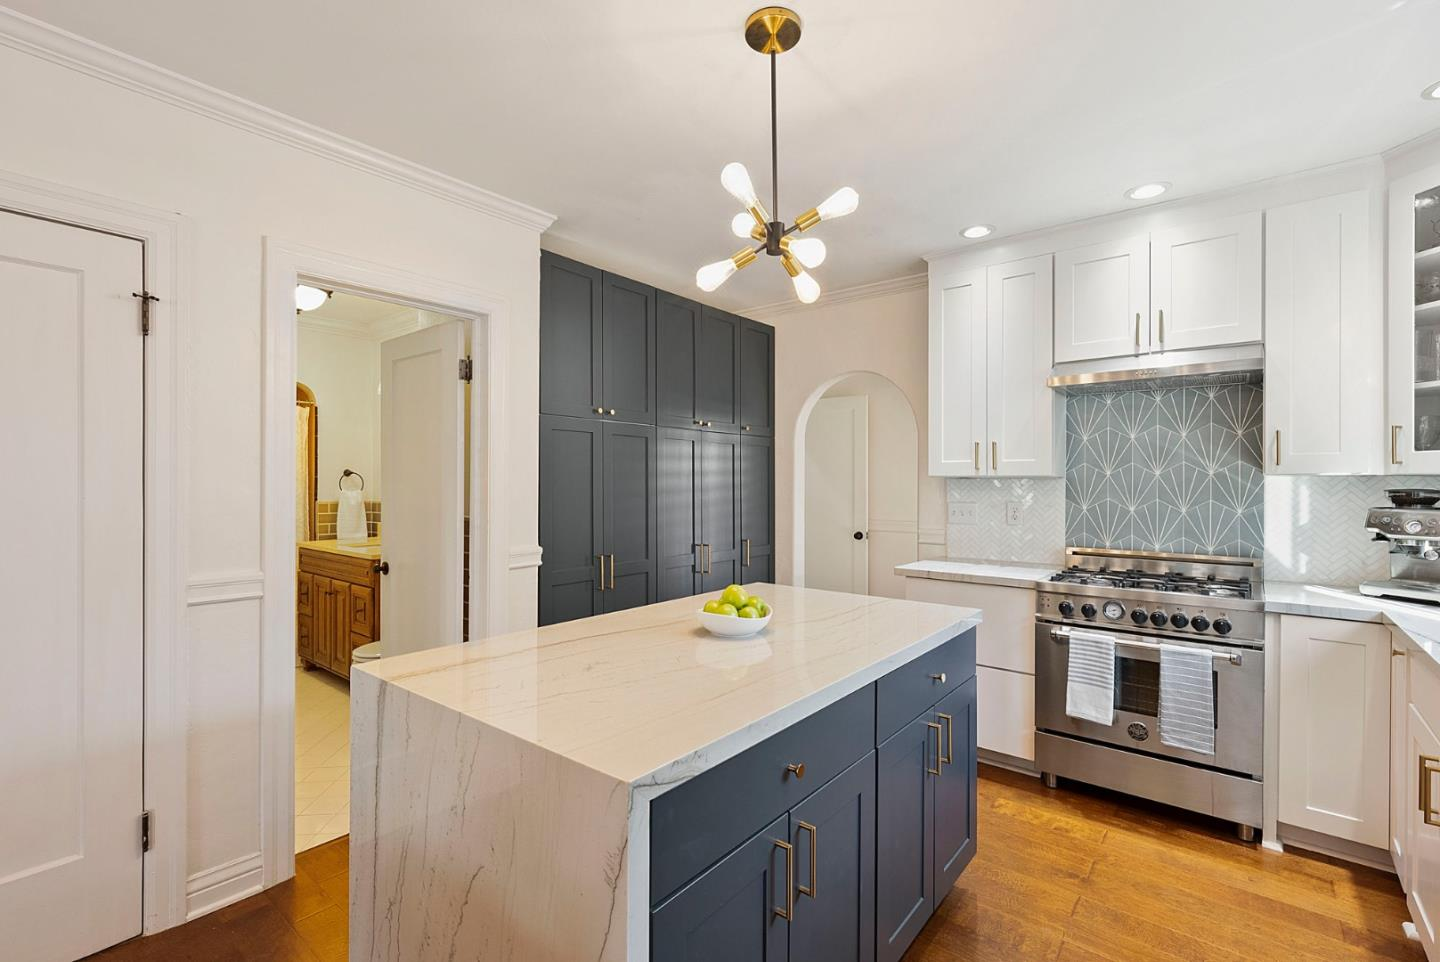 Homes For Sale in San Jose Right Now